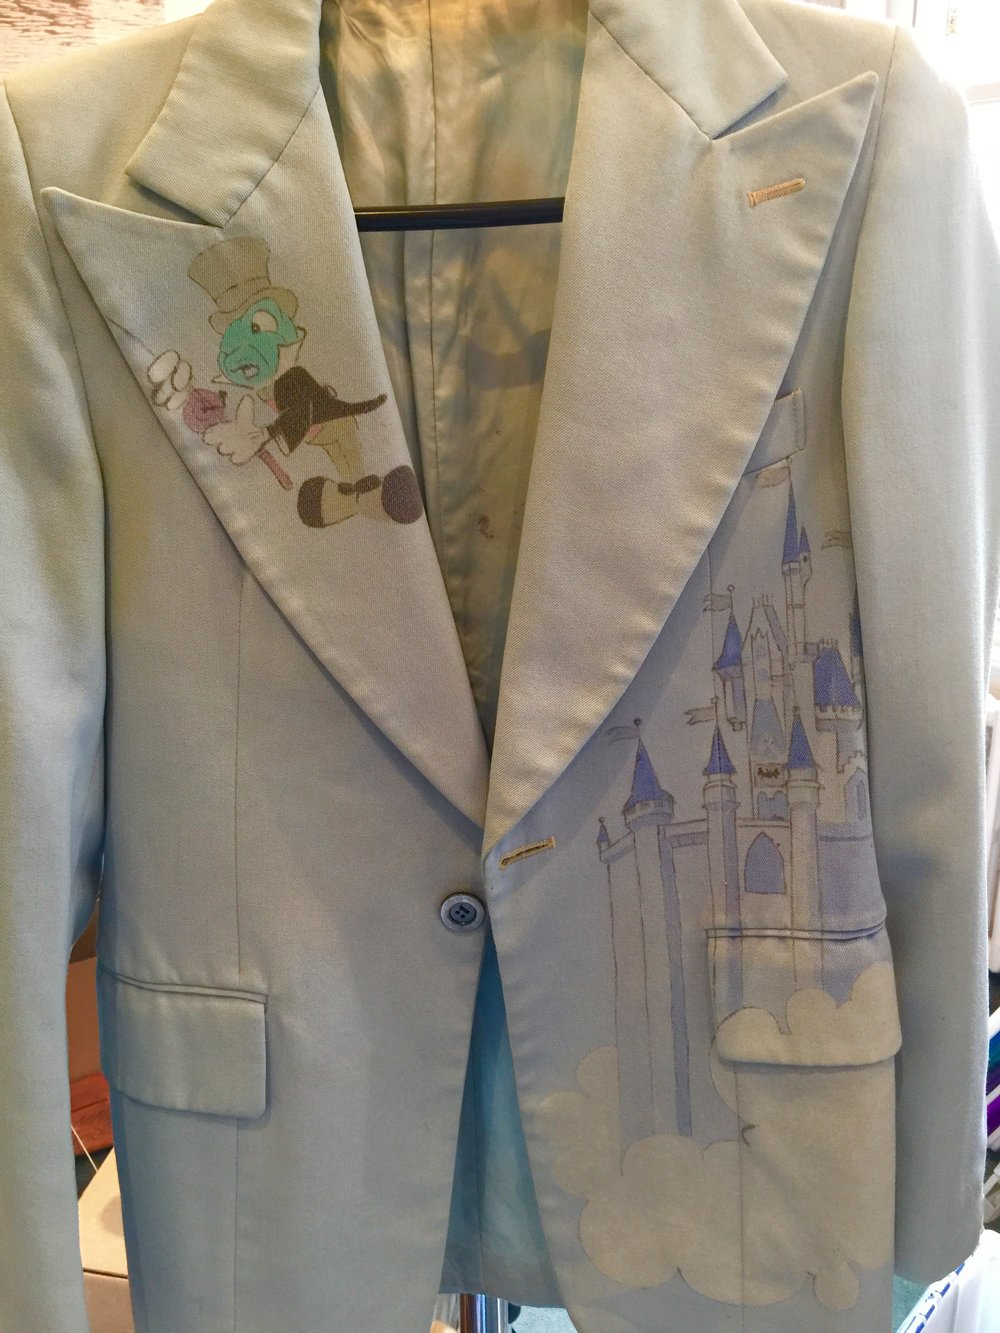 Disney jacket front (faded)